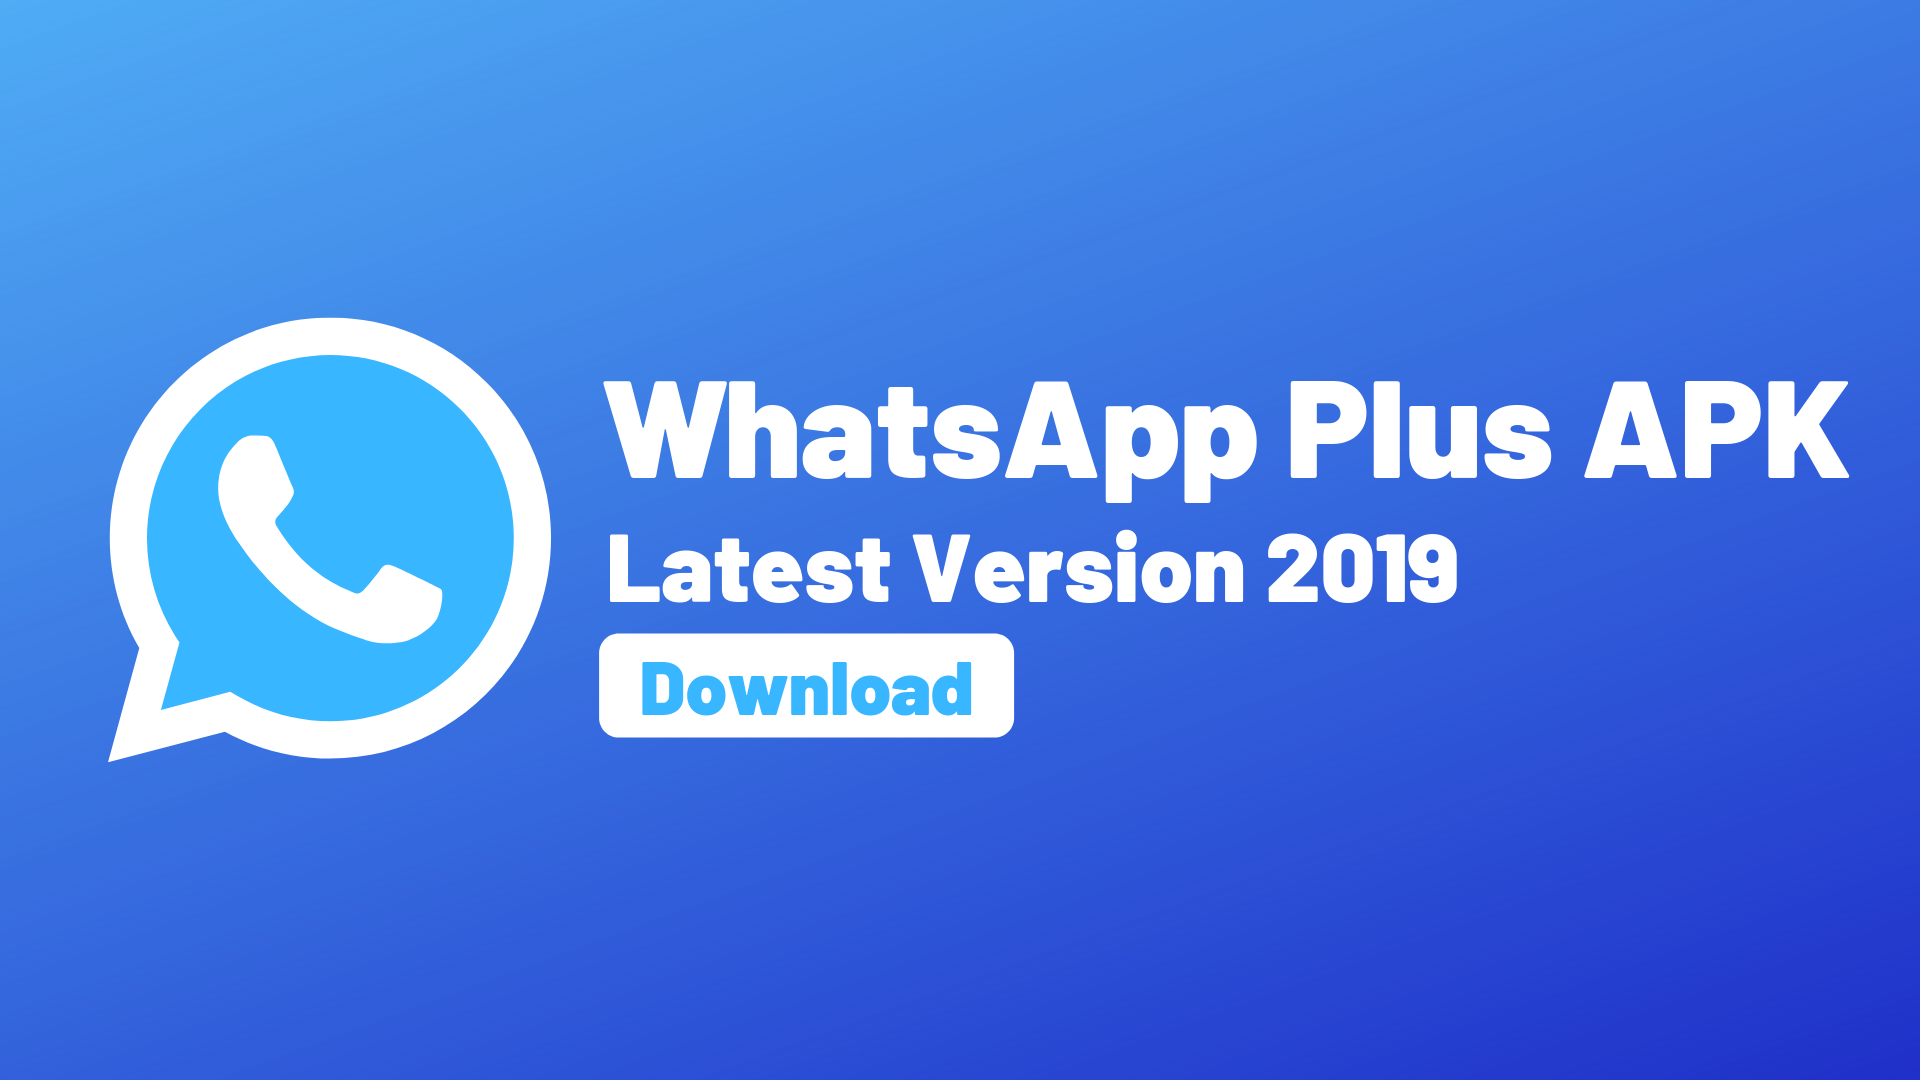 Download And Install WhatsApp Plus APK Latest Version On Android Devices